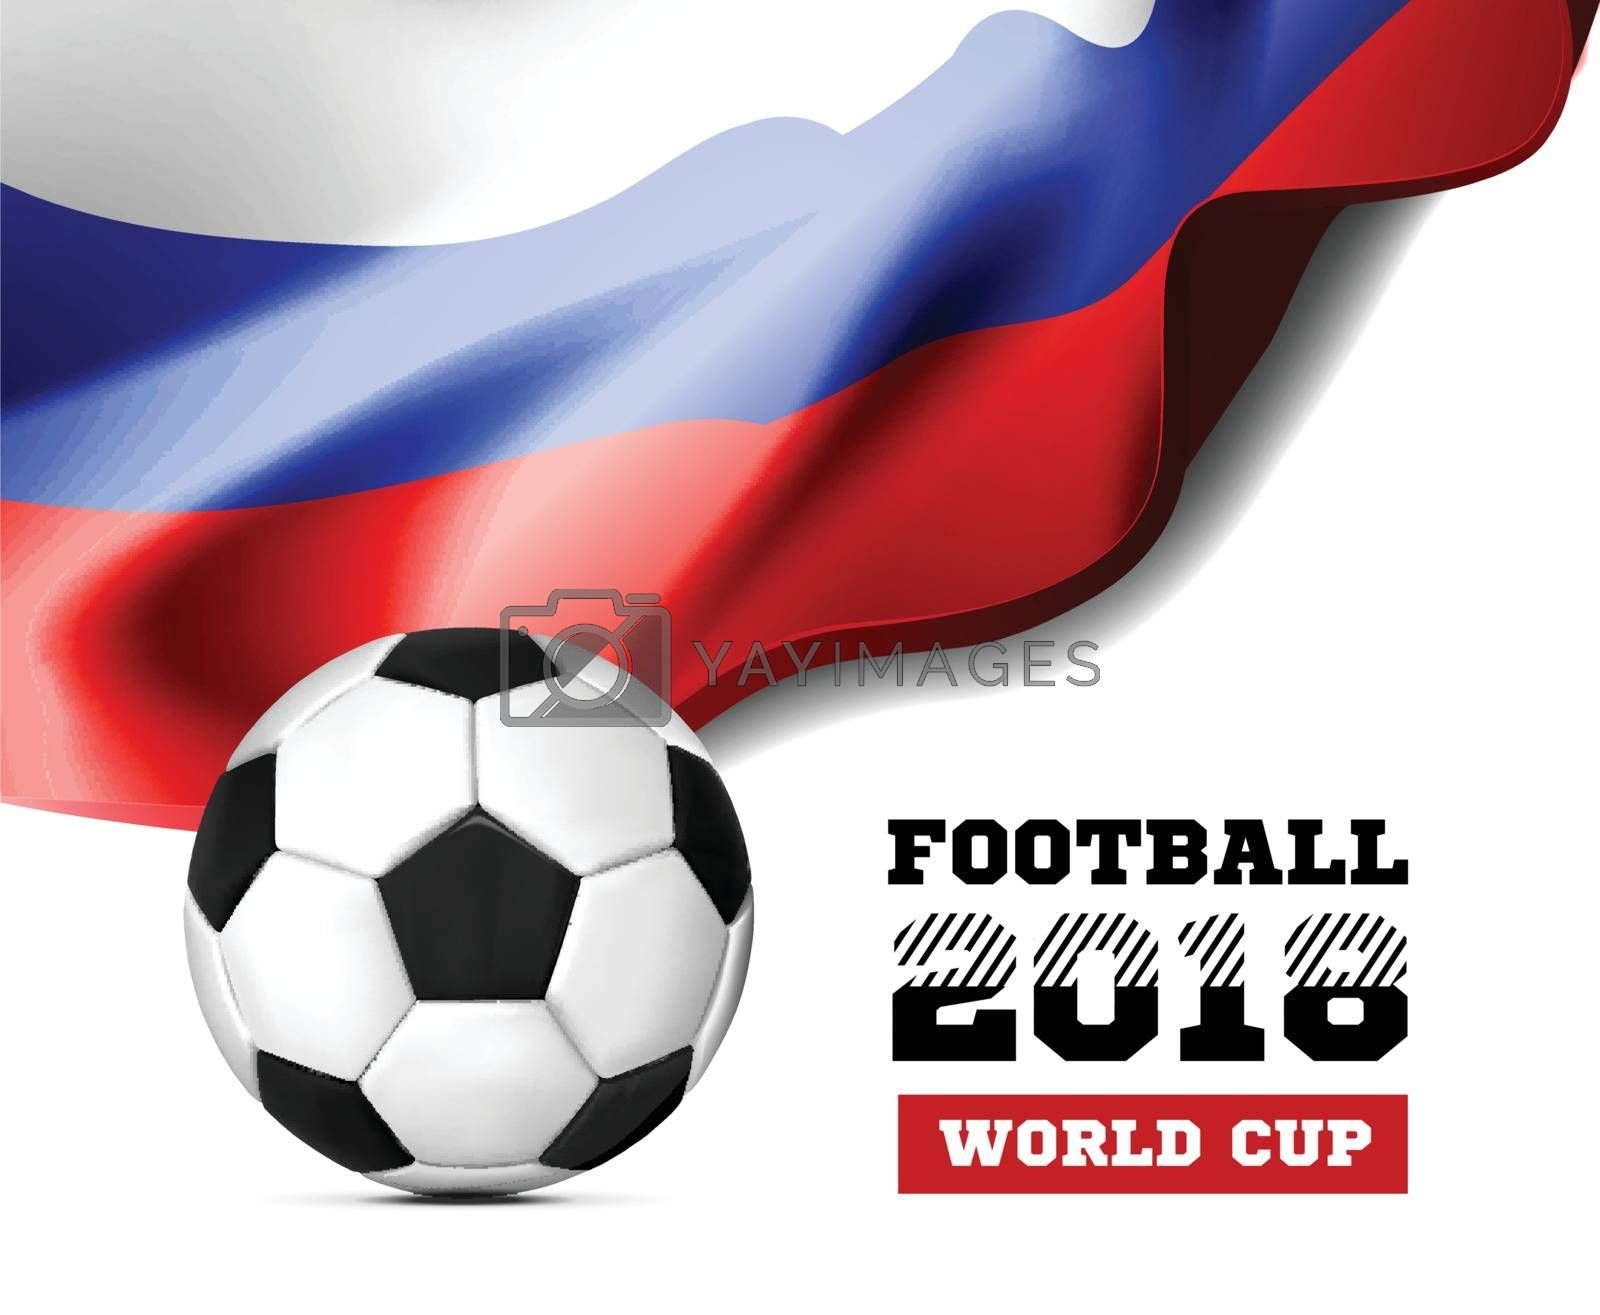 World Championship Football 2018 Background Soccer Russia with flag and football ball. Vector illustration on white